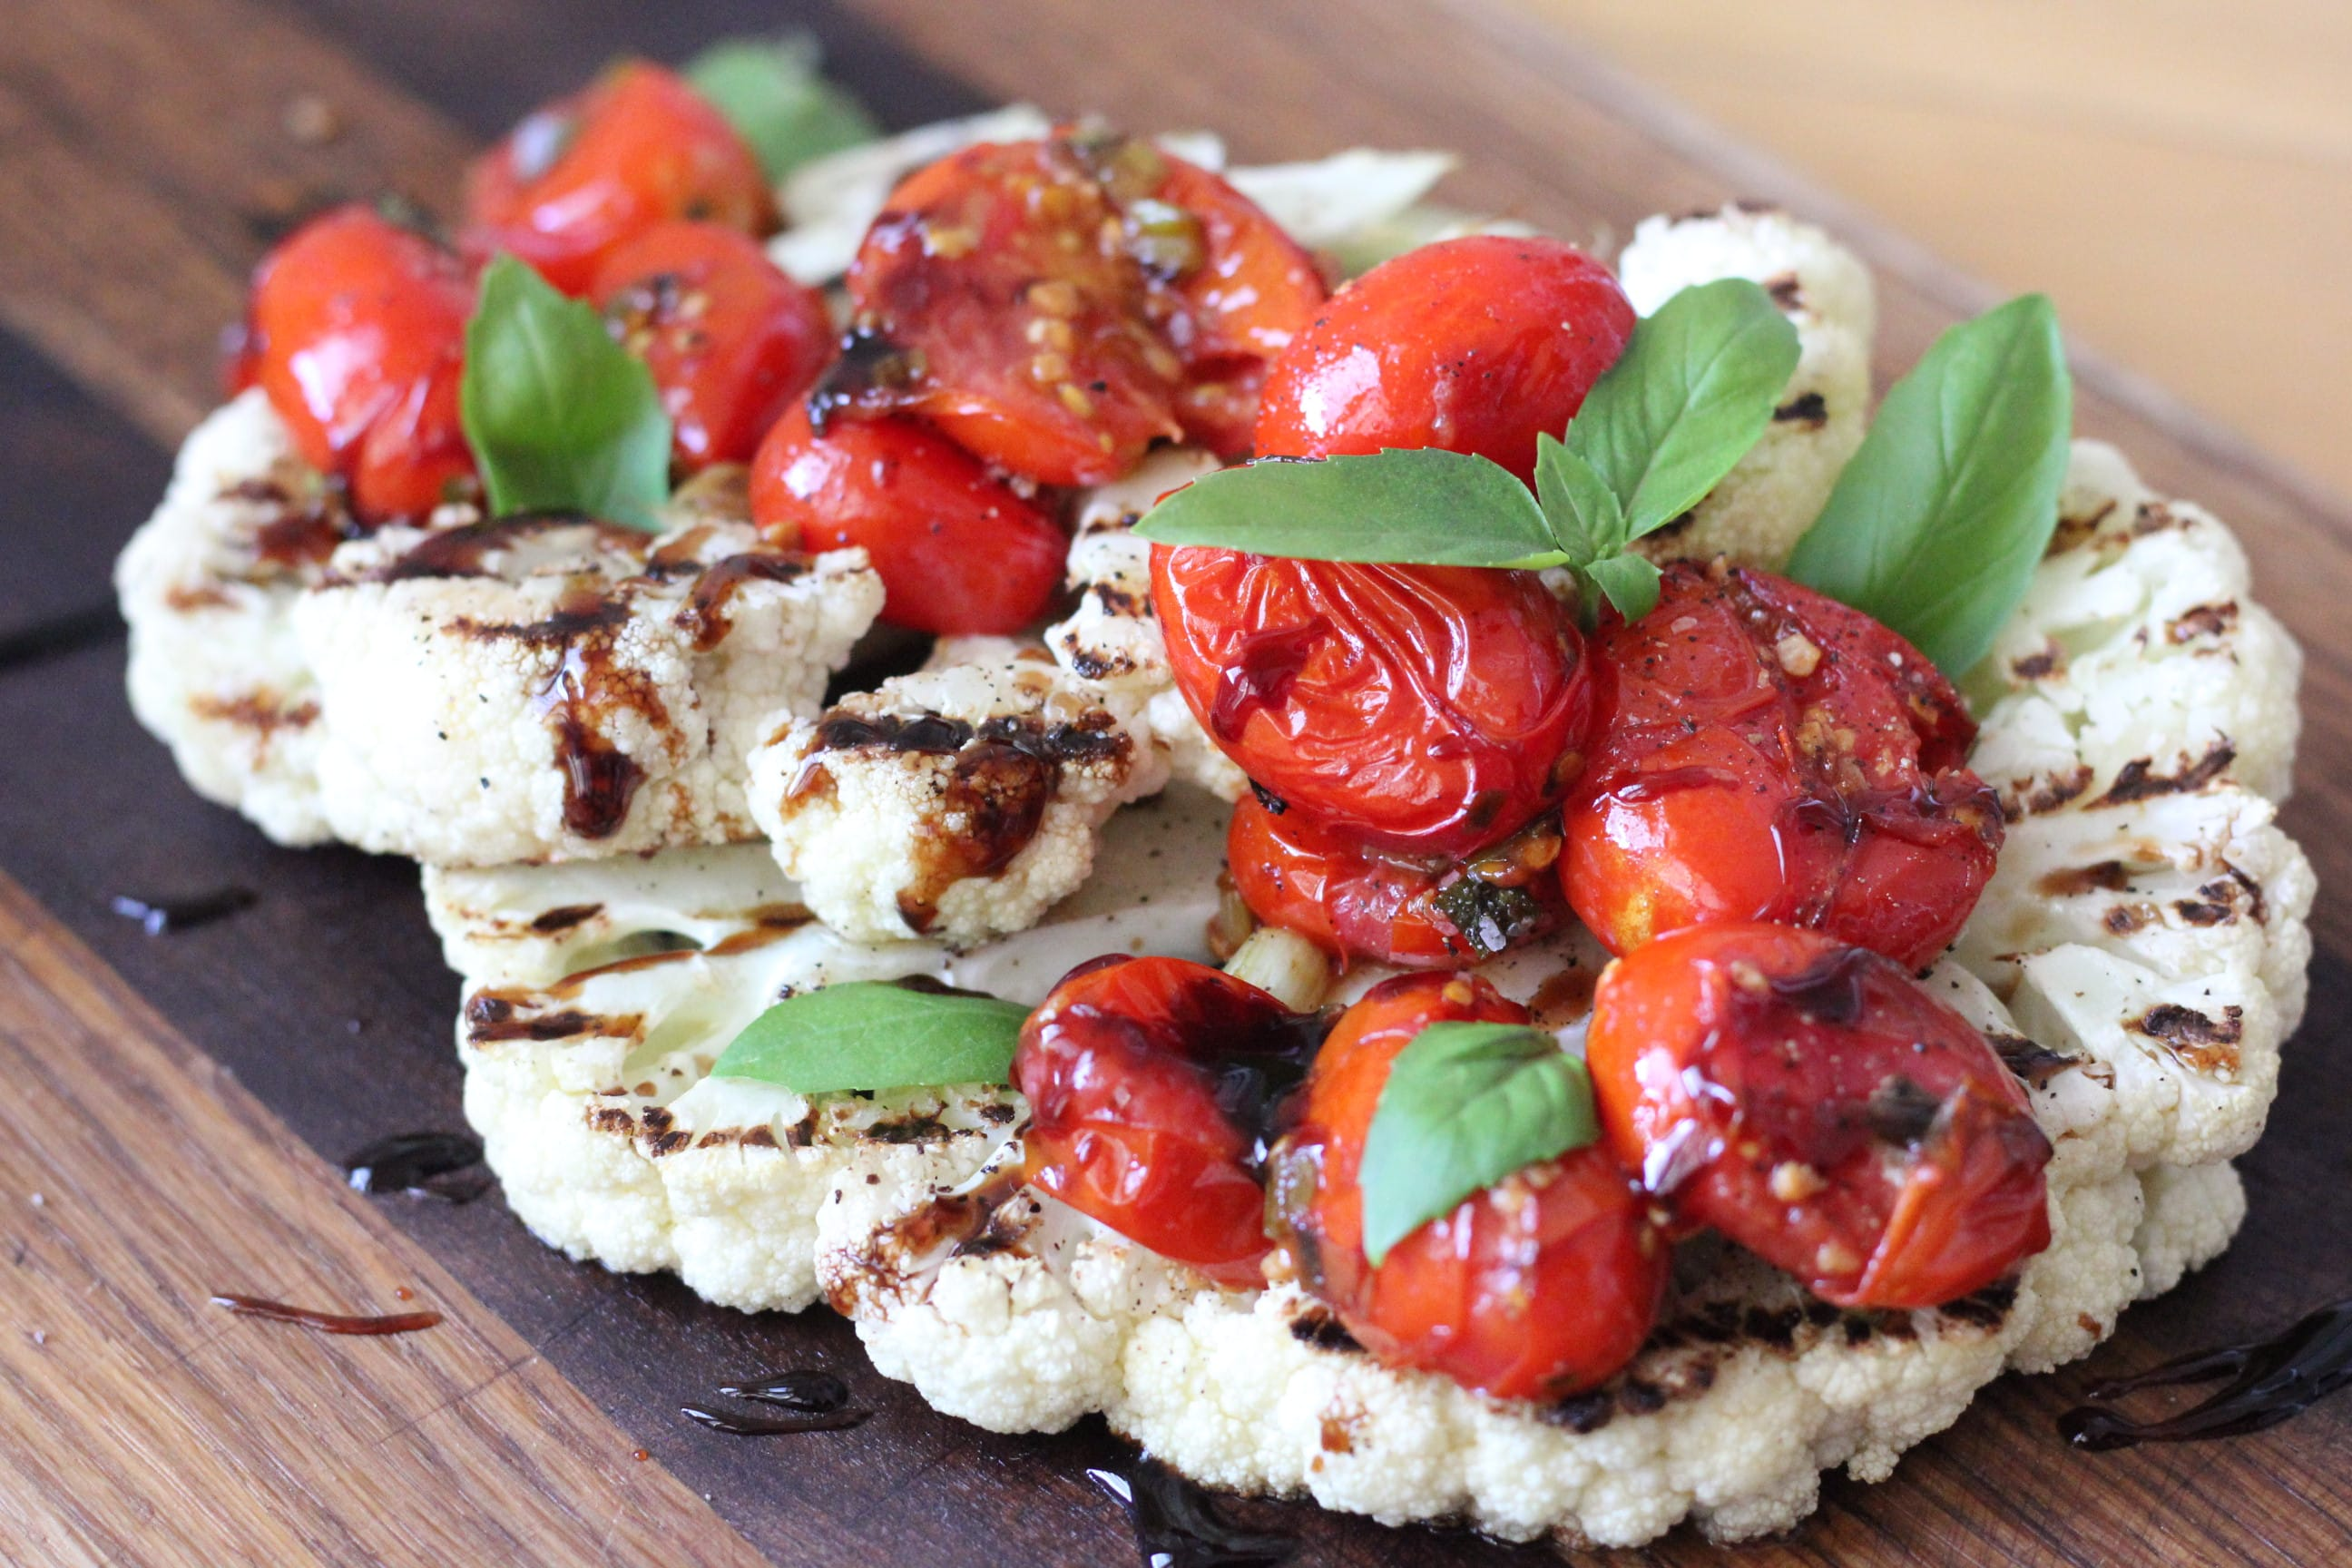 grilled cauliflower steaks with burst tomato salad on a wooden cutting board.